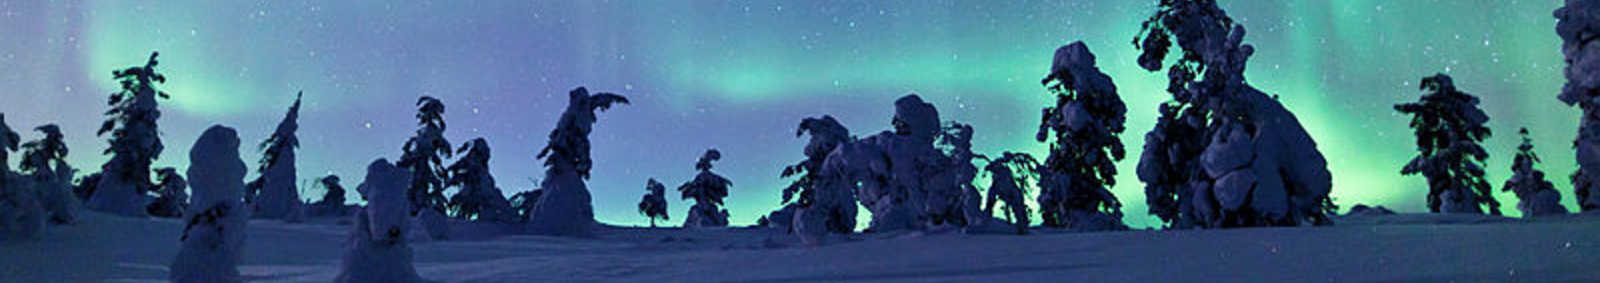 The Aurora on the horizon, Torasseippi. Finland